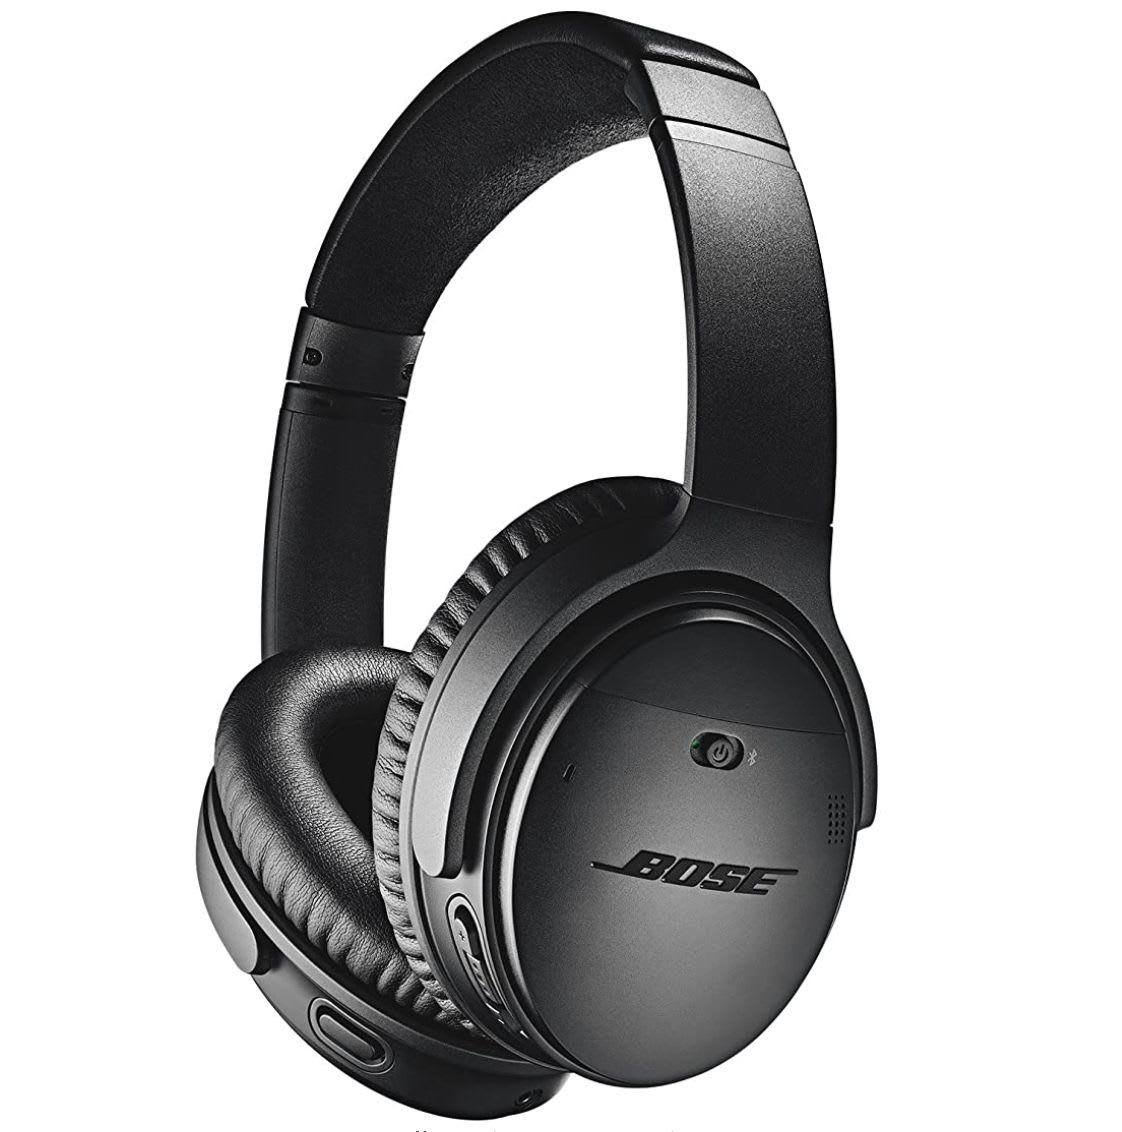 Get deals during Amazon Prime Day 2020 like these Bose headphones